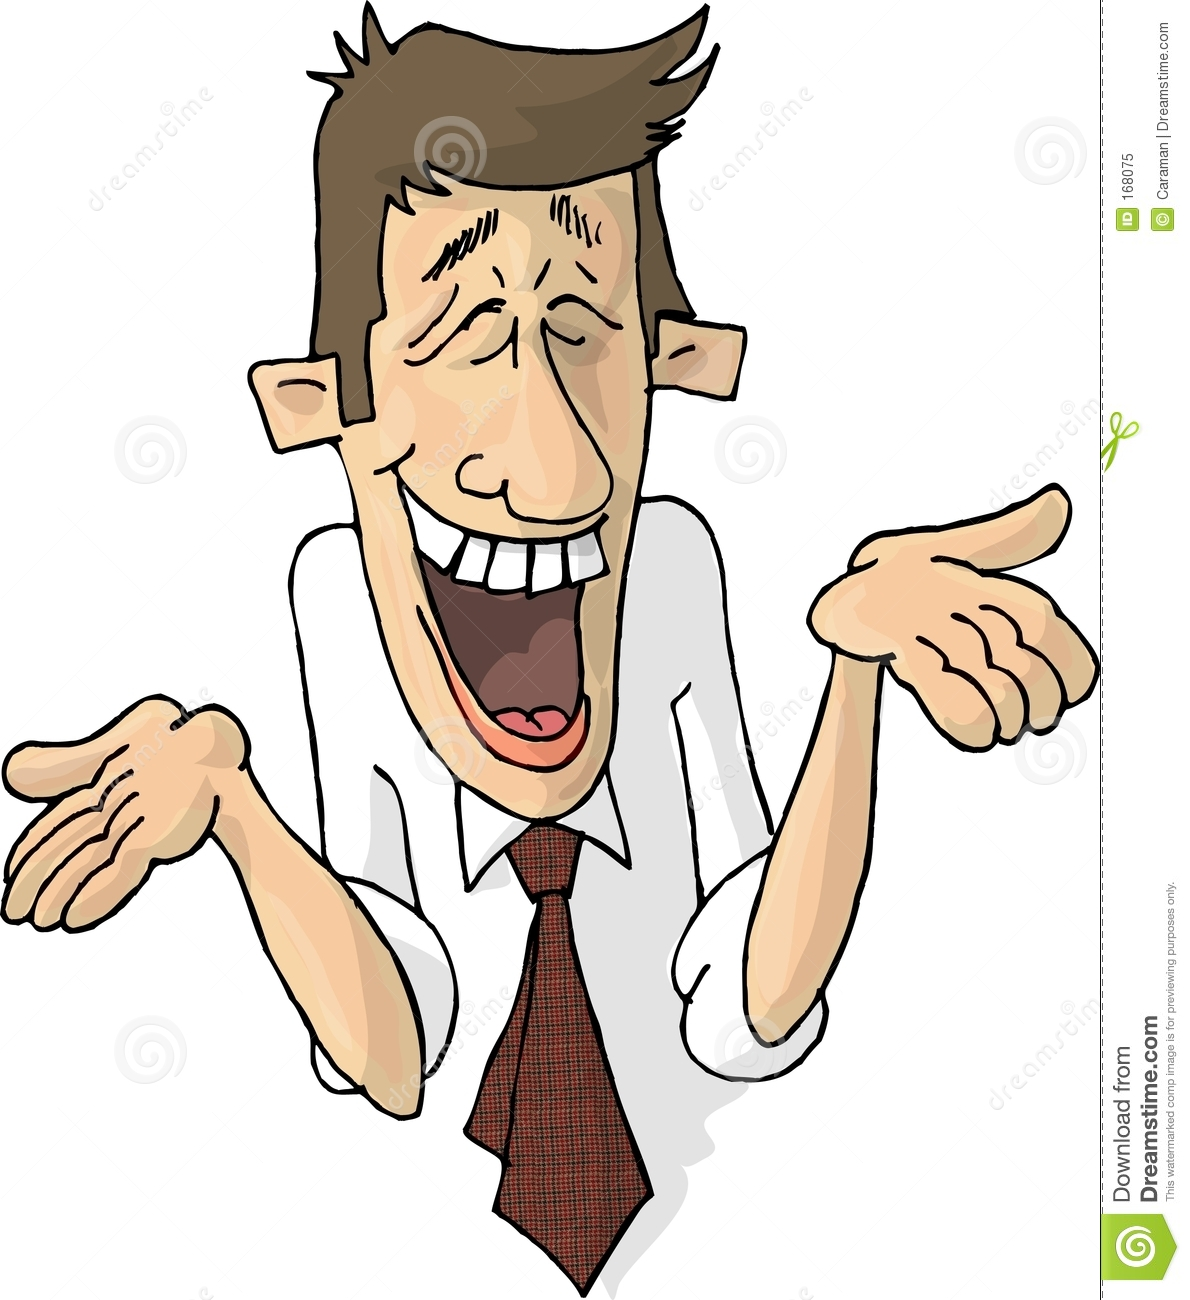 man laughing clipart - photo #18